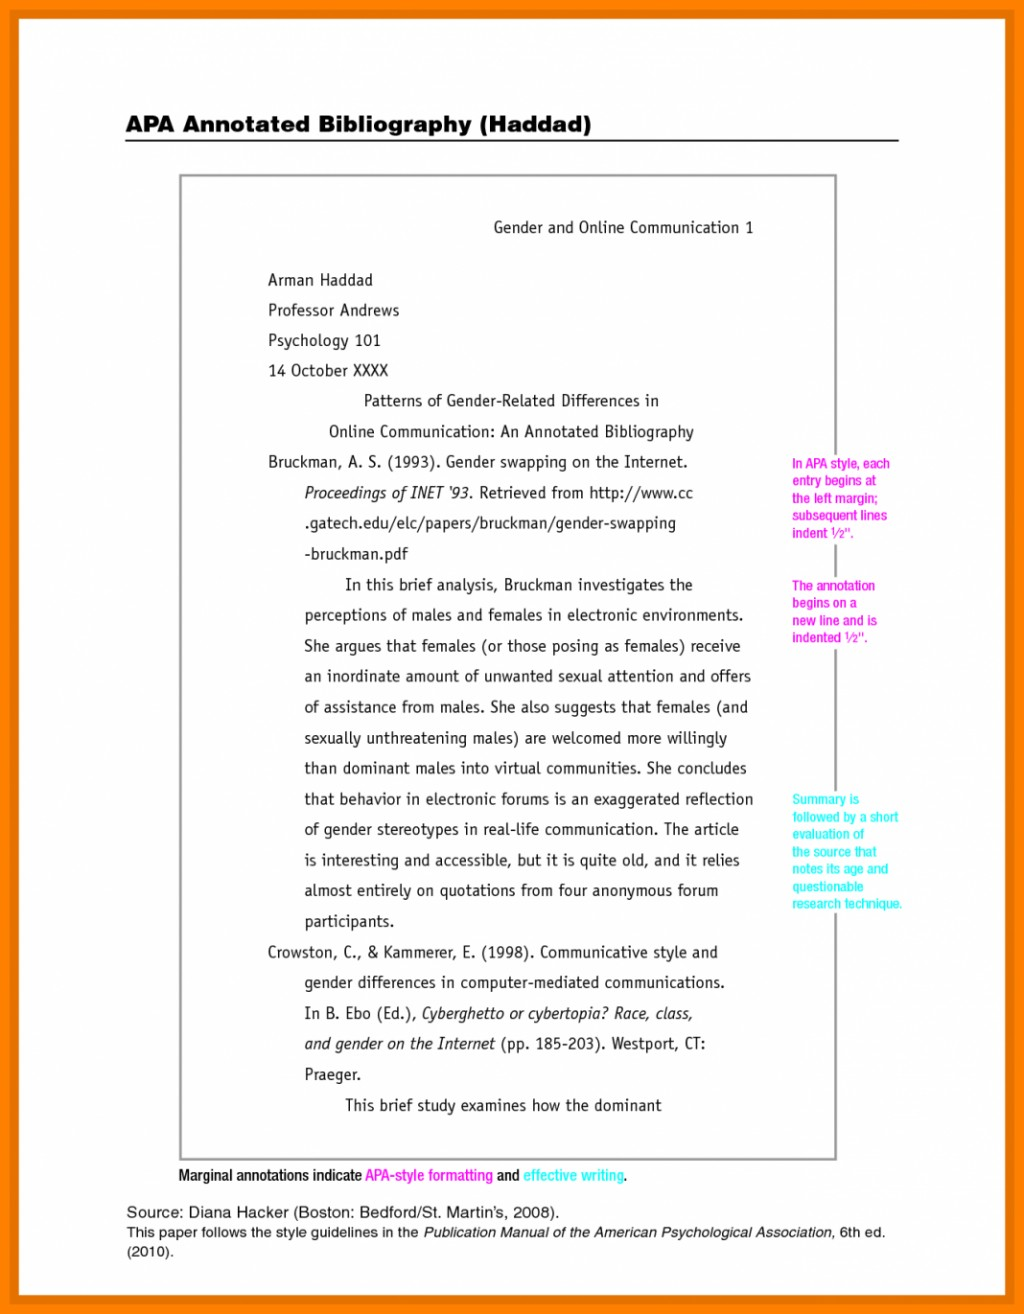 011 Asa Essay Format Example Samples Texas Tech Rehab Counseling Sample Research Paper Remarkable Reference Citation Website For Journal Article Large